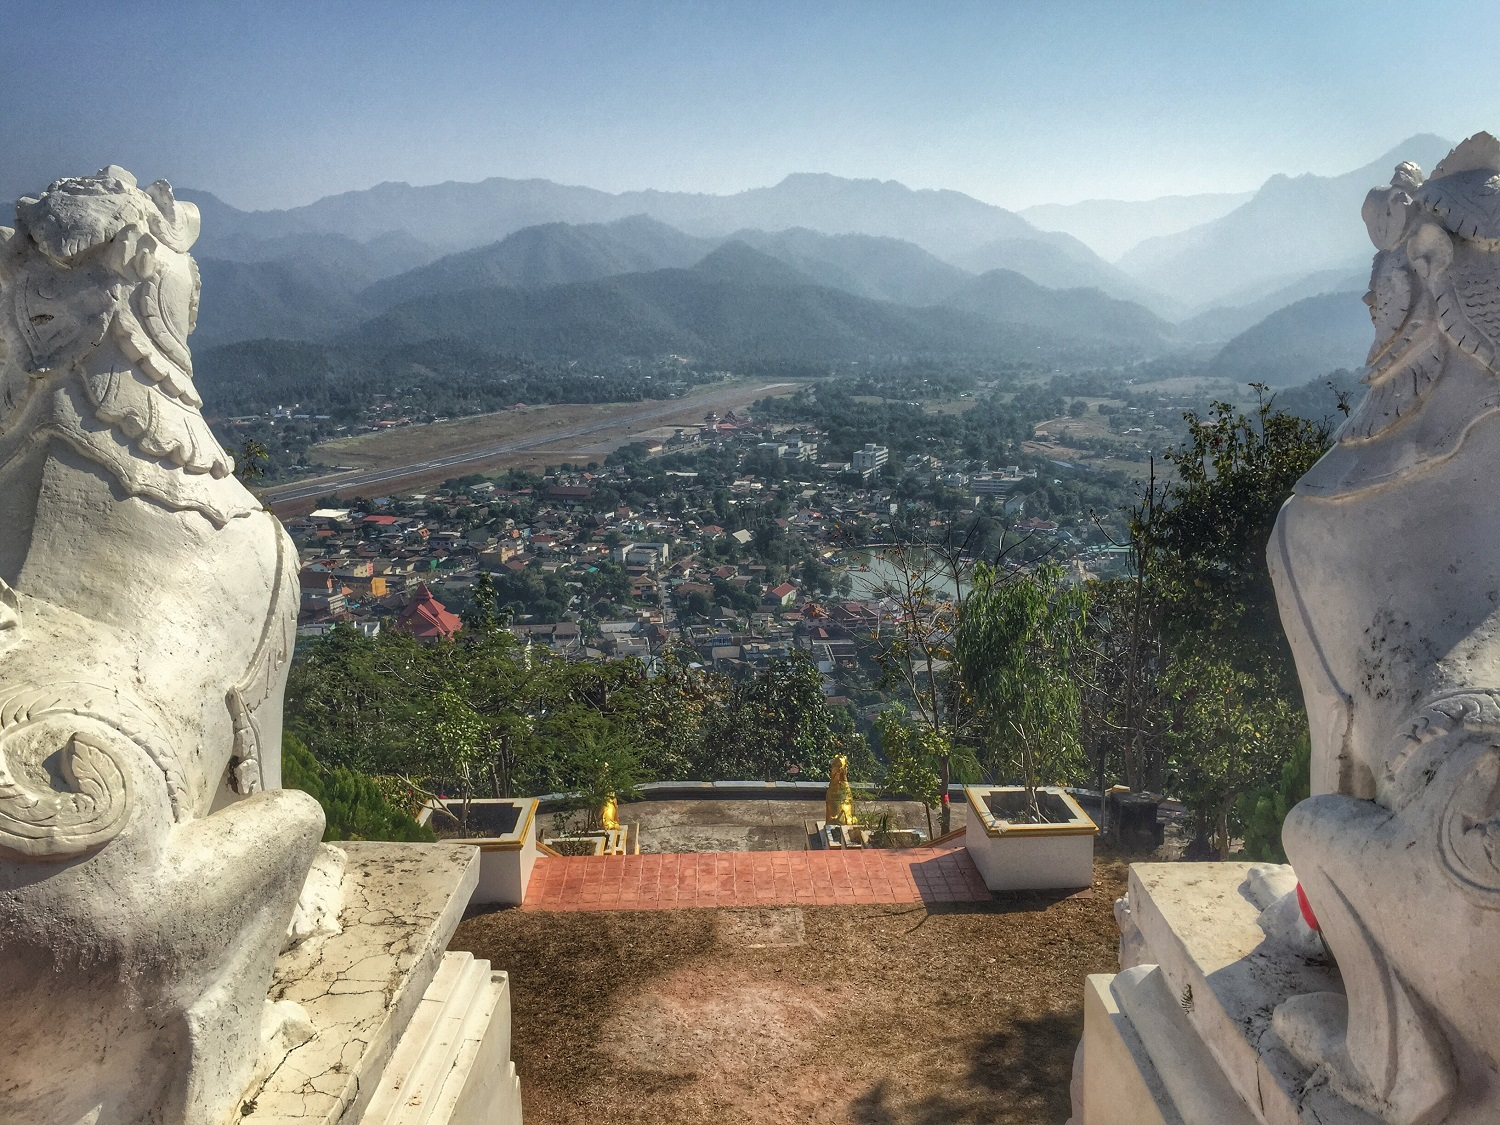 panoramic view of mae hong son from temple above town